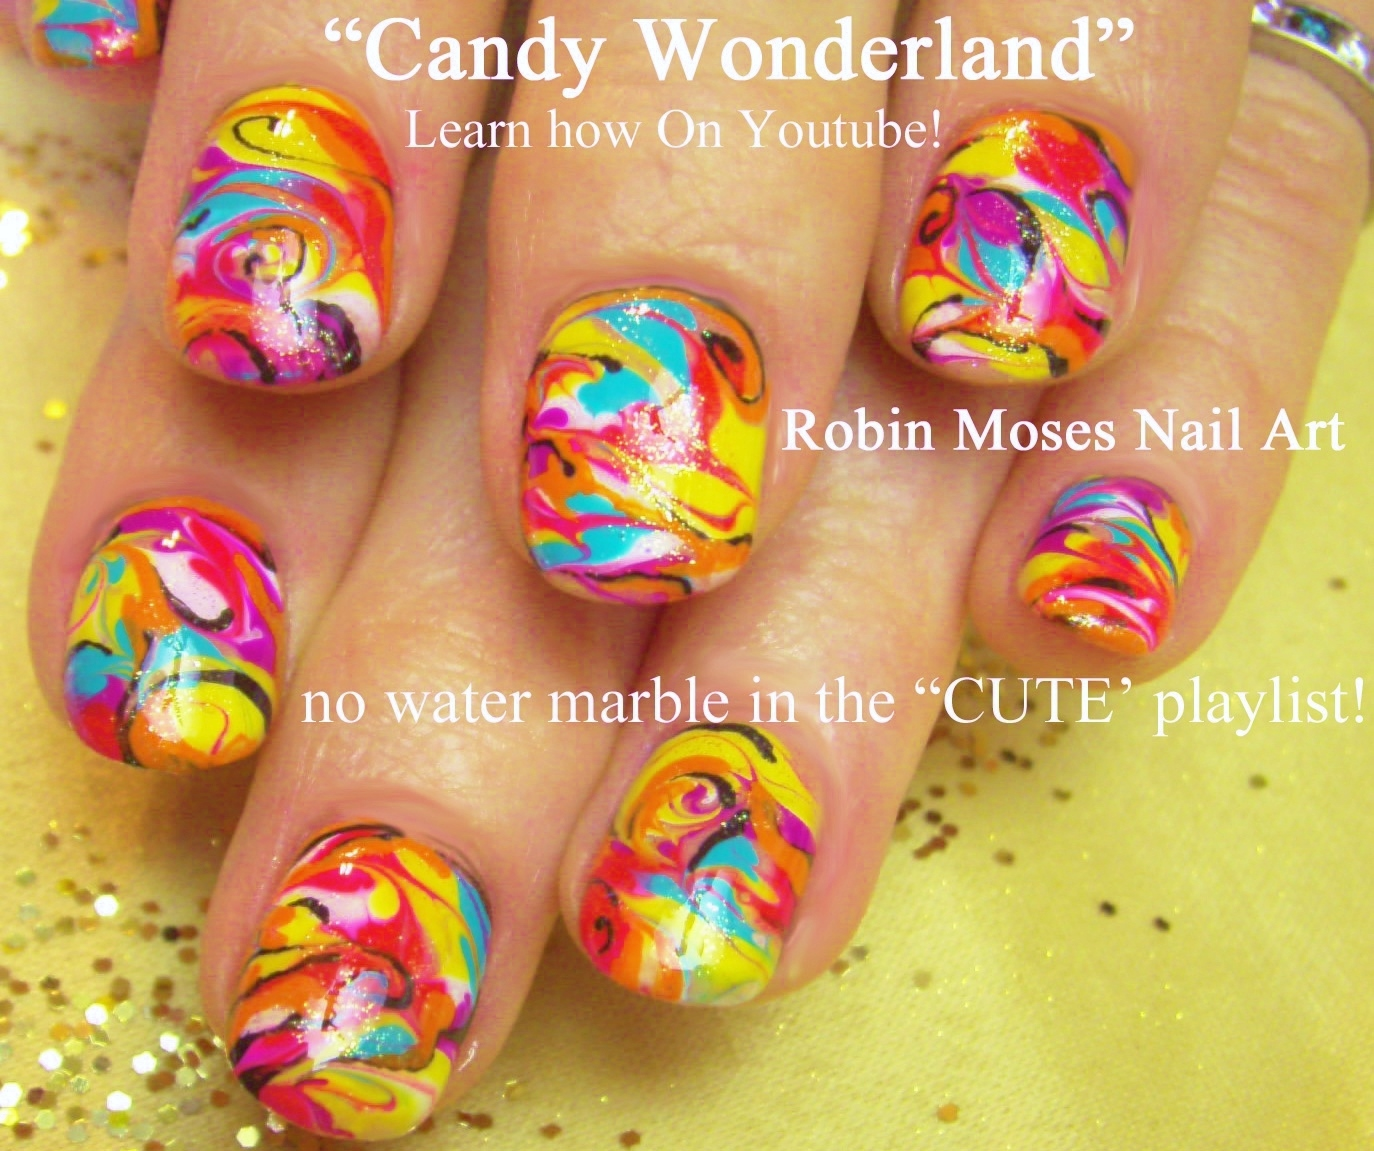 Robin moses nail art no water marble nail art design tutorial flower no water marble swirled nails how to how to make swirled nails how to make nails look marbled prinsesfo Images